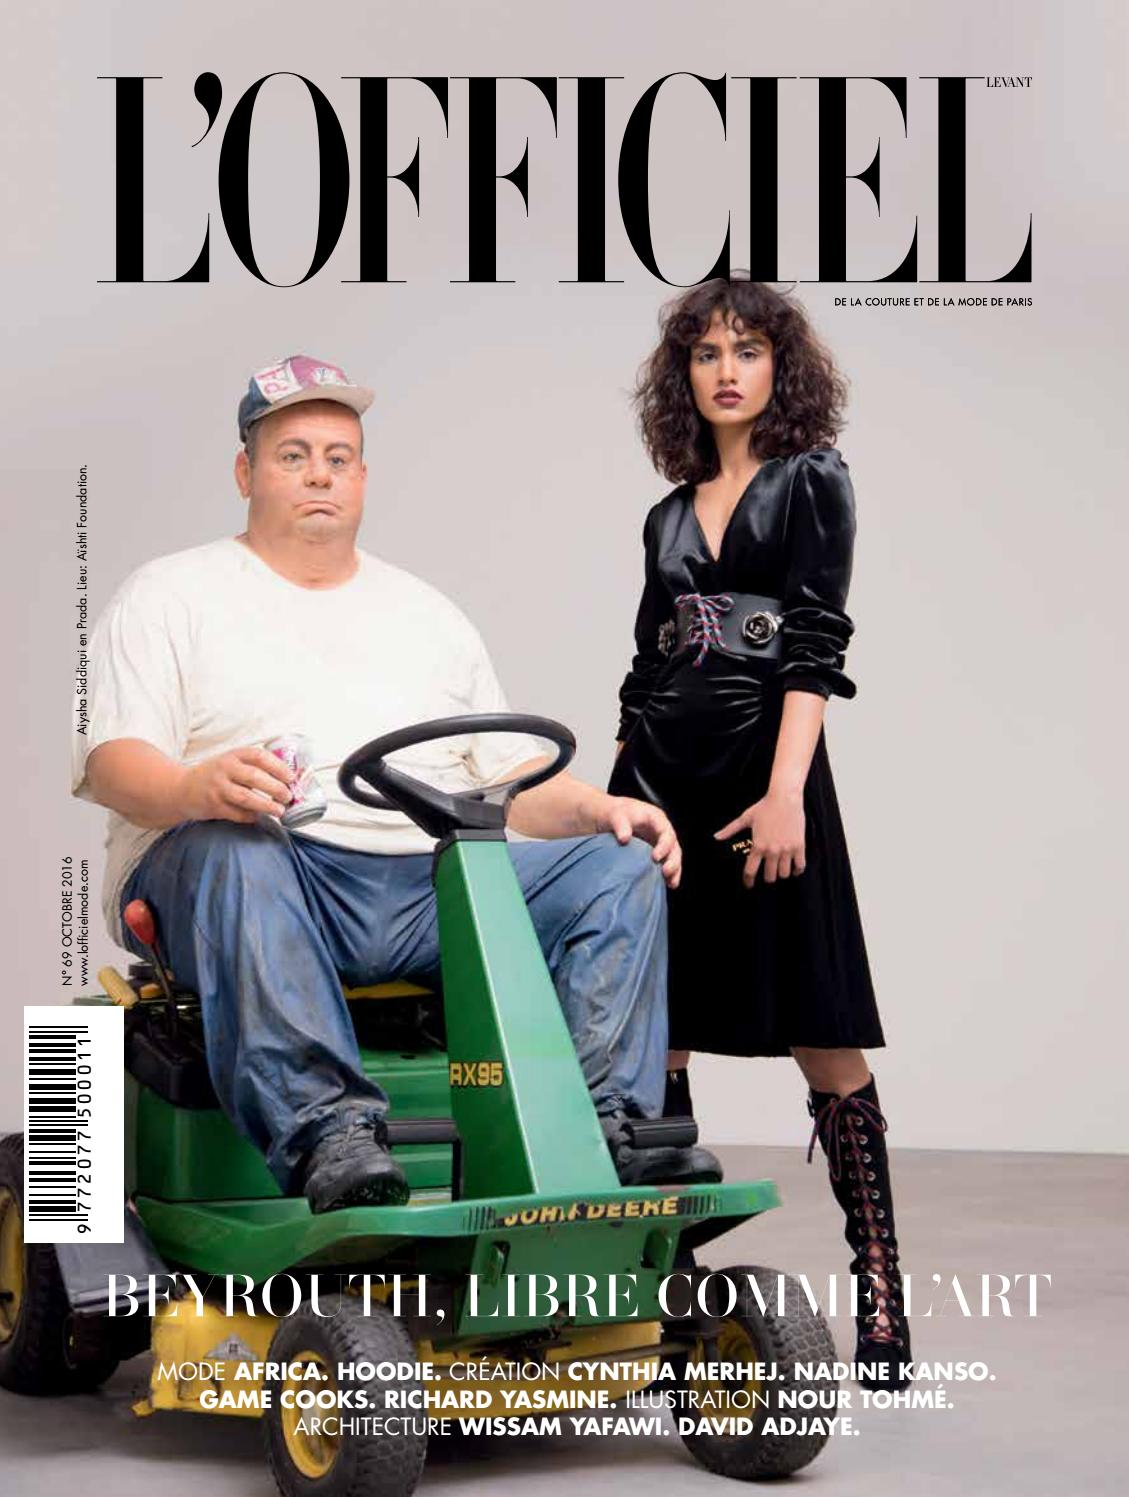 L Officiel-Levant, October Issue 69 by L Officiel Levant - issuu 0544a1e128c